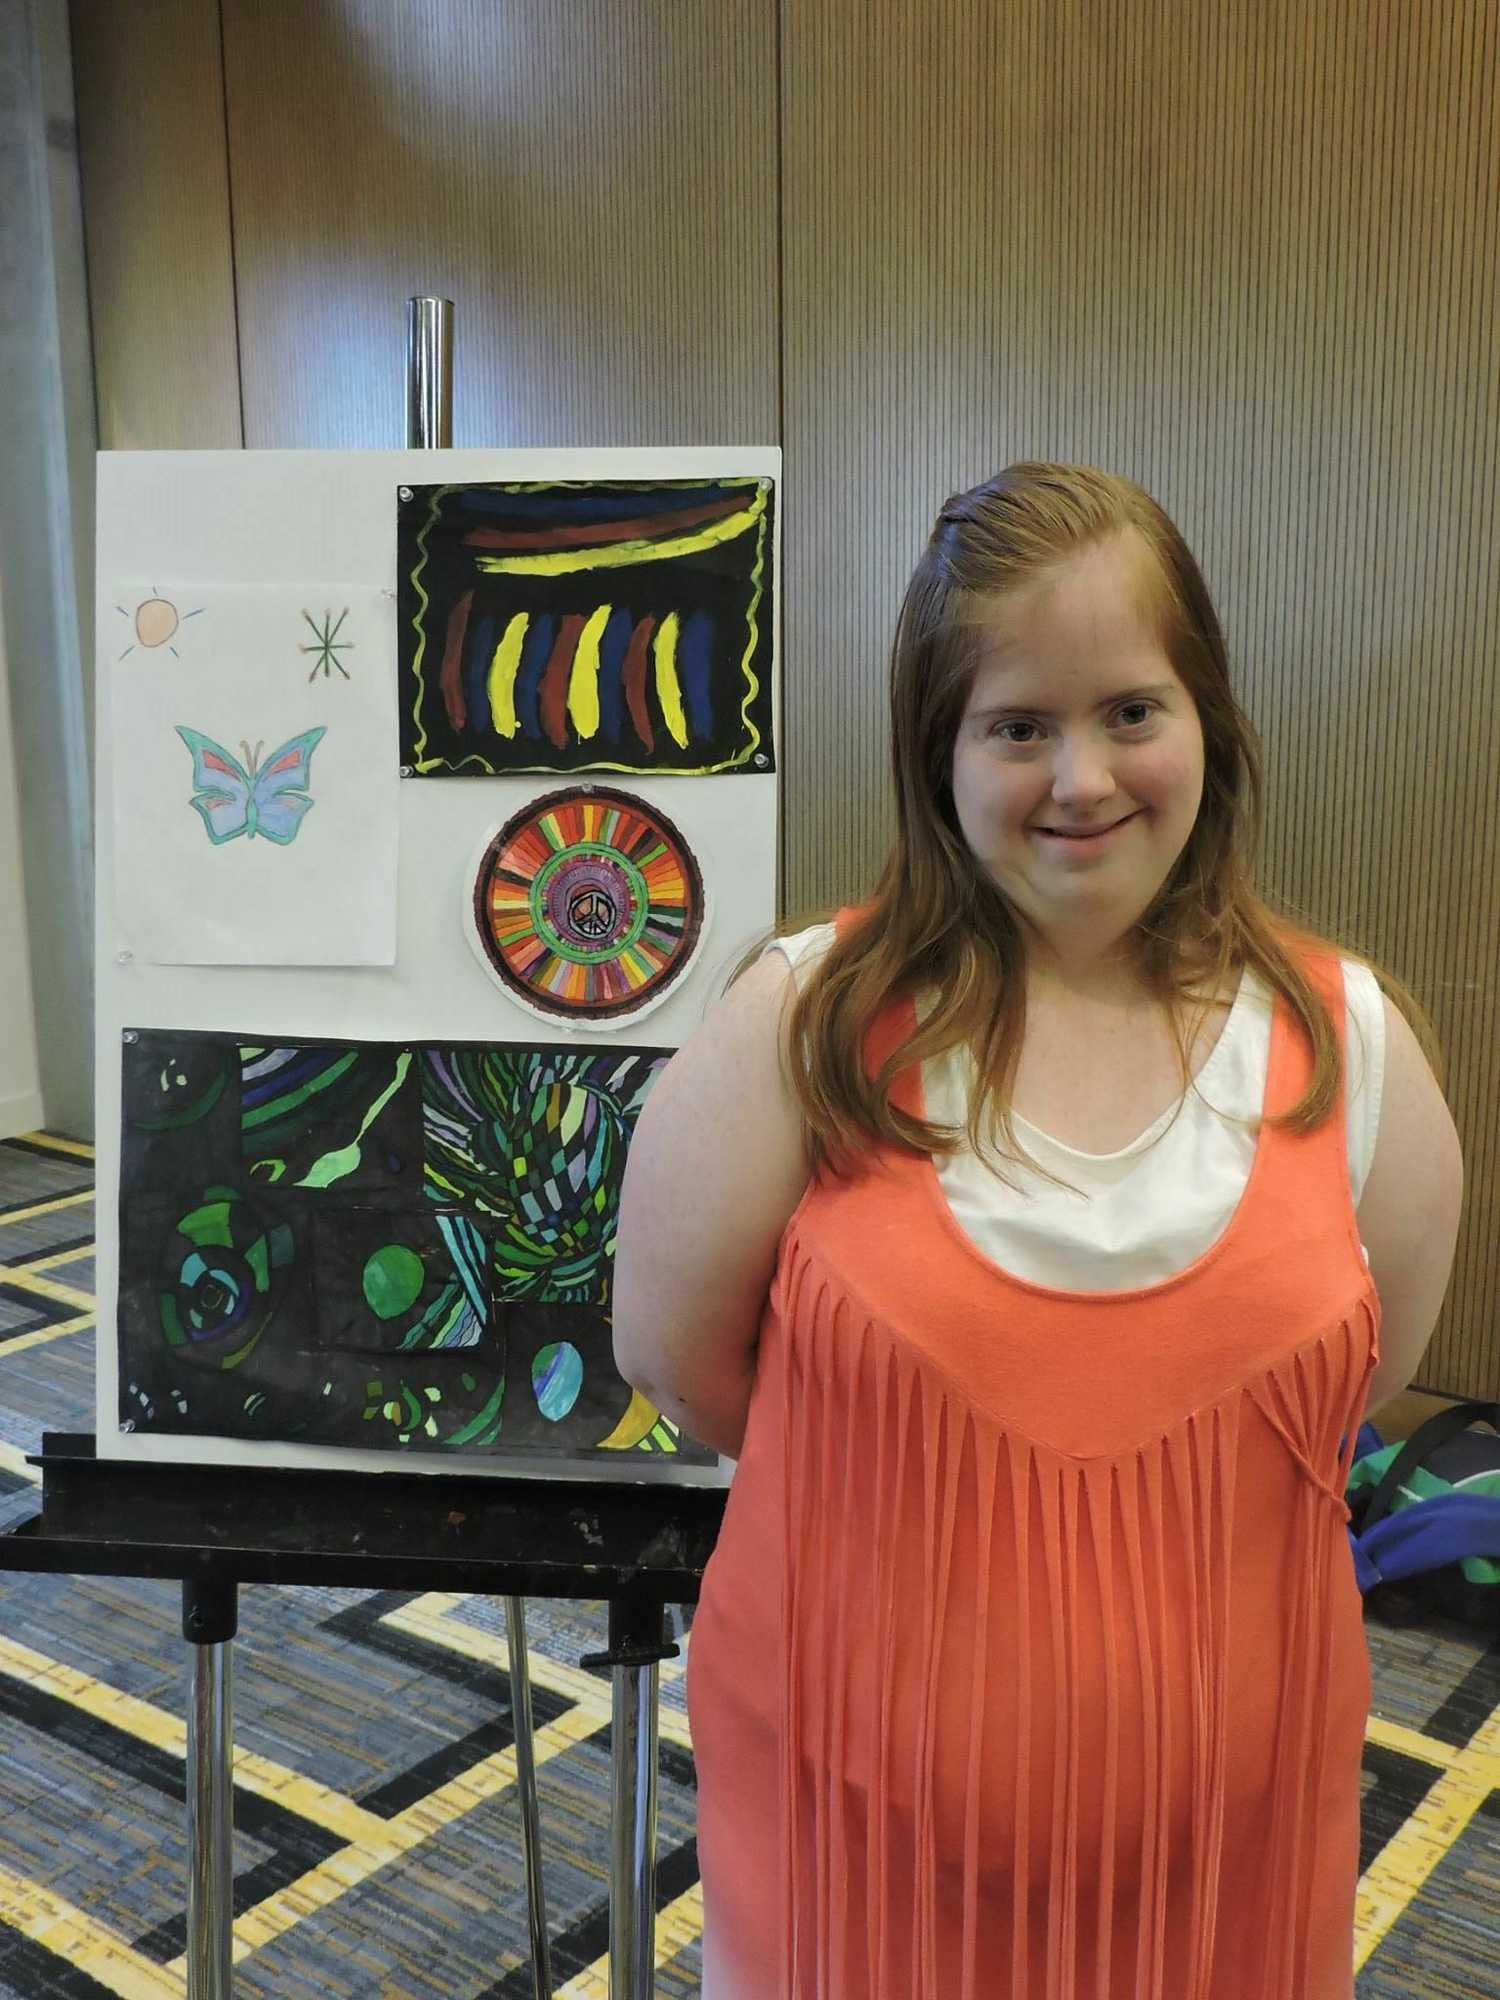 Moriah McKinney stands in front of her artwork on display during the ASNC Appalachian State Artist Showcase on Saturday night in Parkway Ballroom. McKinney's favorite piece is the butterfly drawing. Photo courtesy of Sydney Messer.